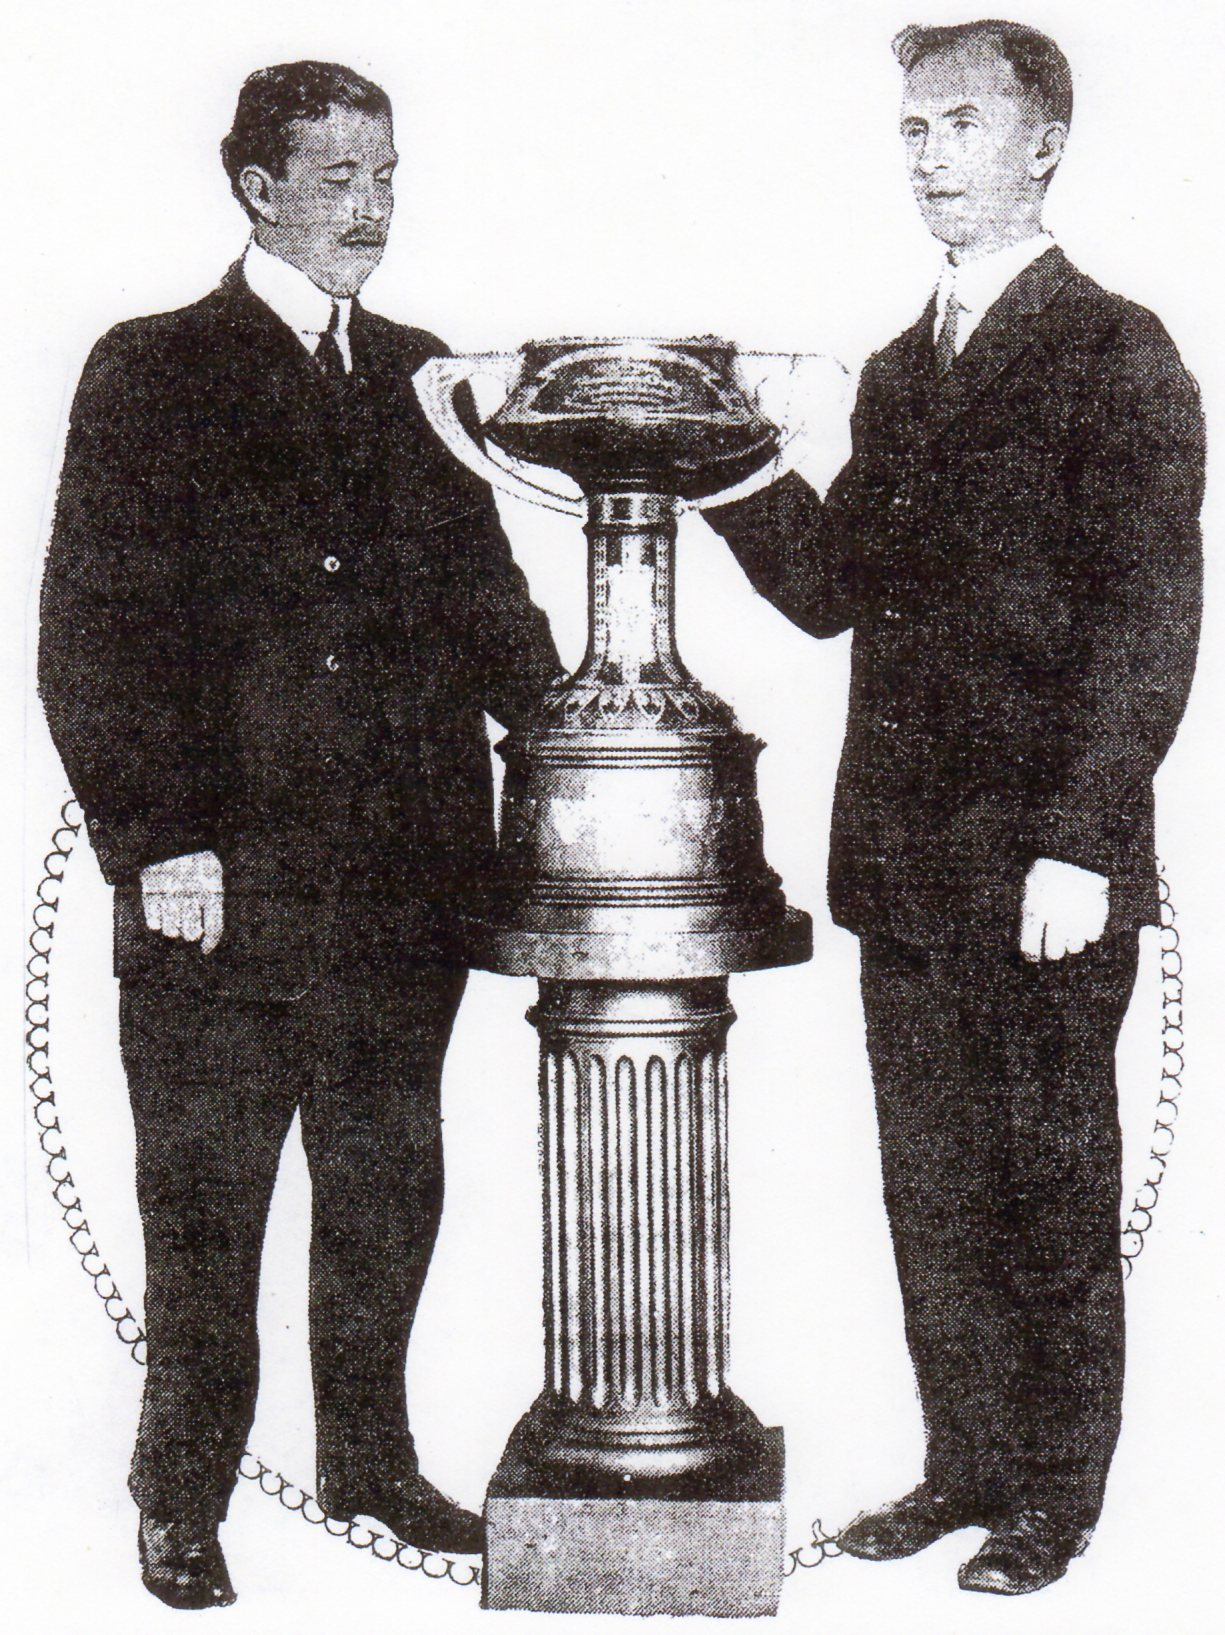 Van Patten (right) and Earnest Oliver of Los Angeles High, with perpetual trophy, were pivotal figures in formation of CIF kin 1913.